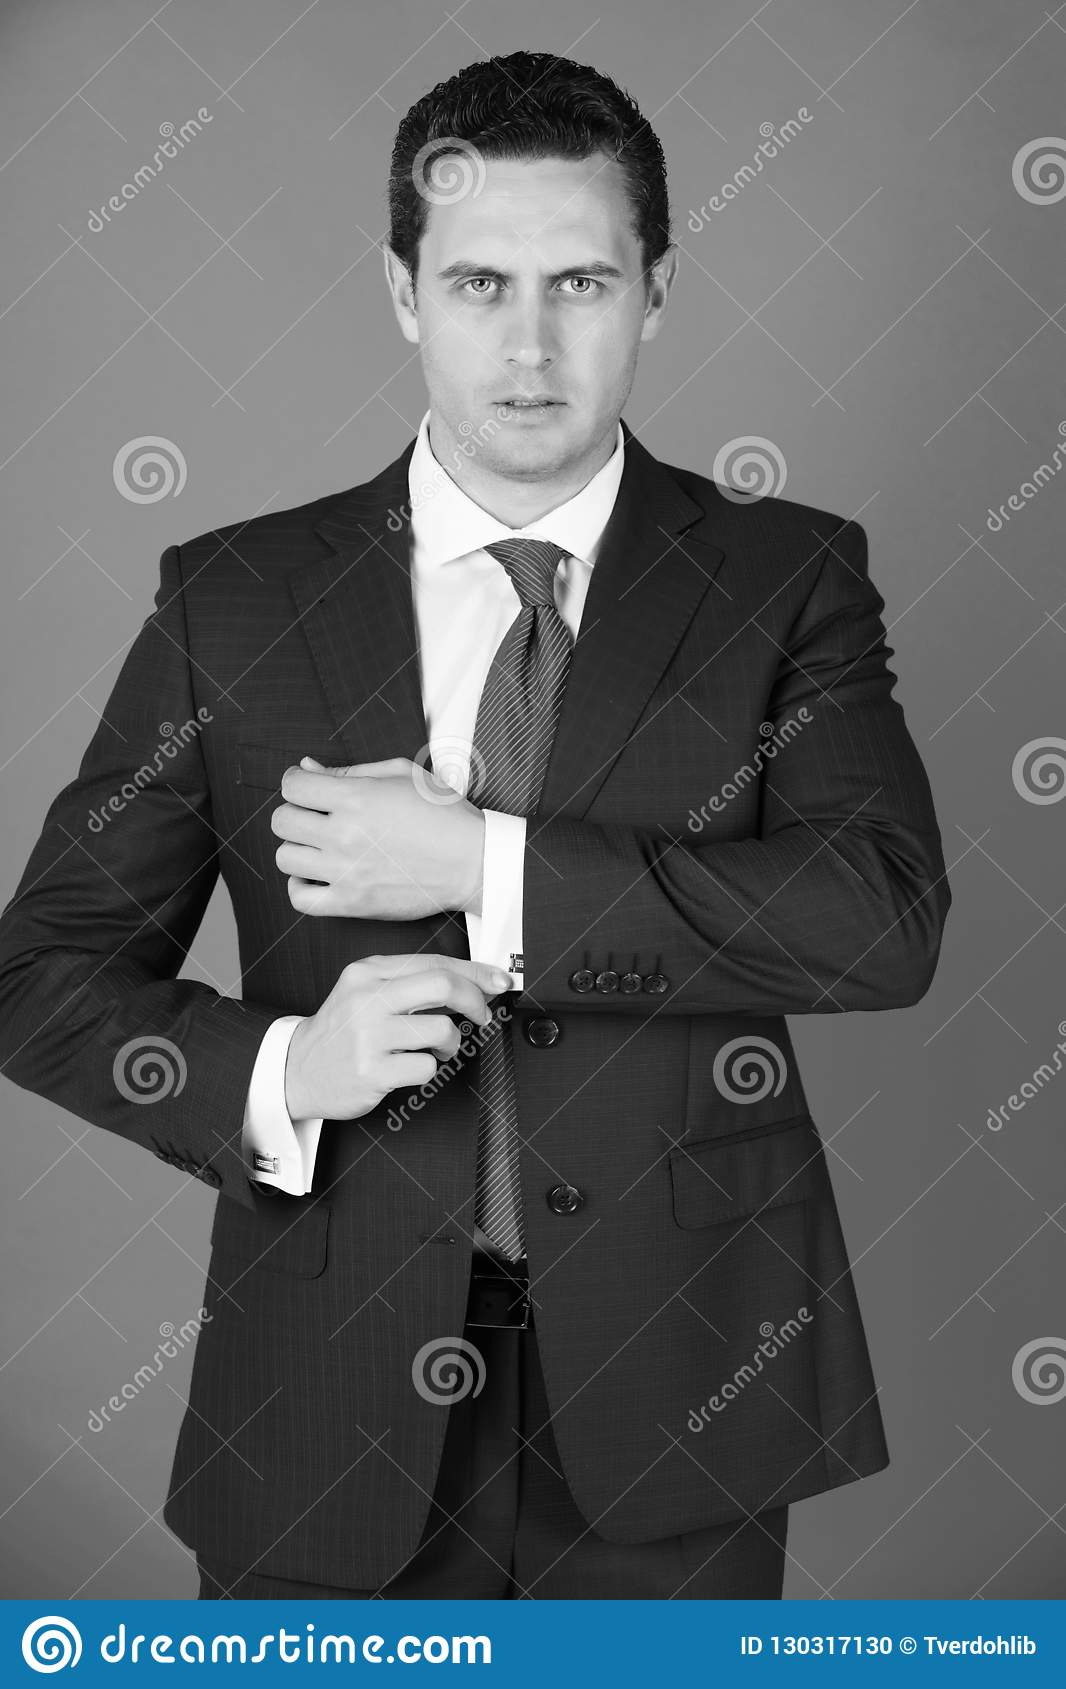 45dbfb6a3 Man, confident businessman or successful boss with stylish hair, haircut in elegant  navy formal suit and tie fixing cufflinks on white shirt on blue ...